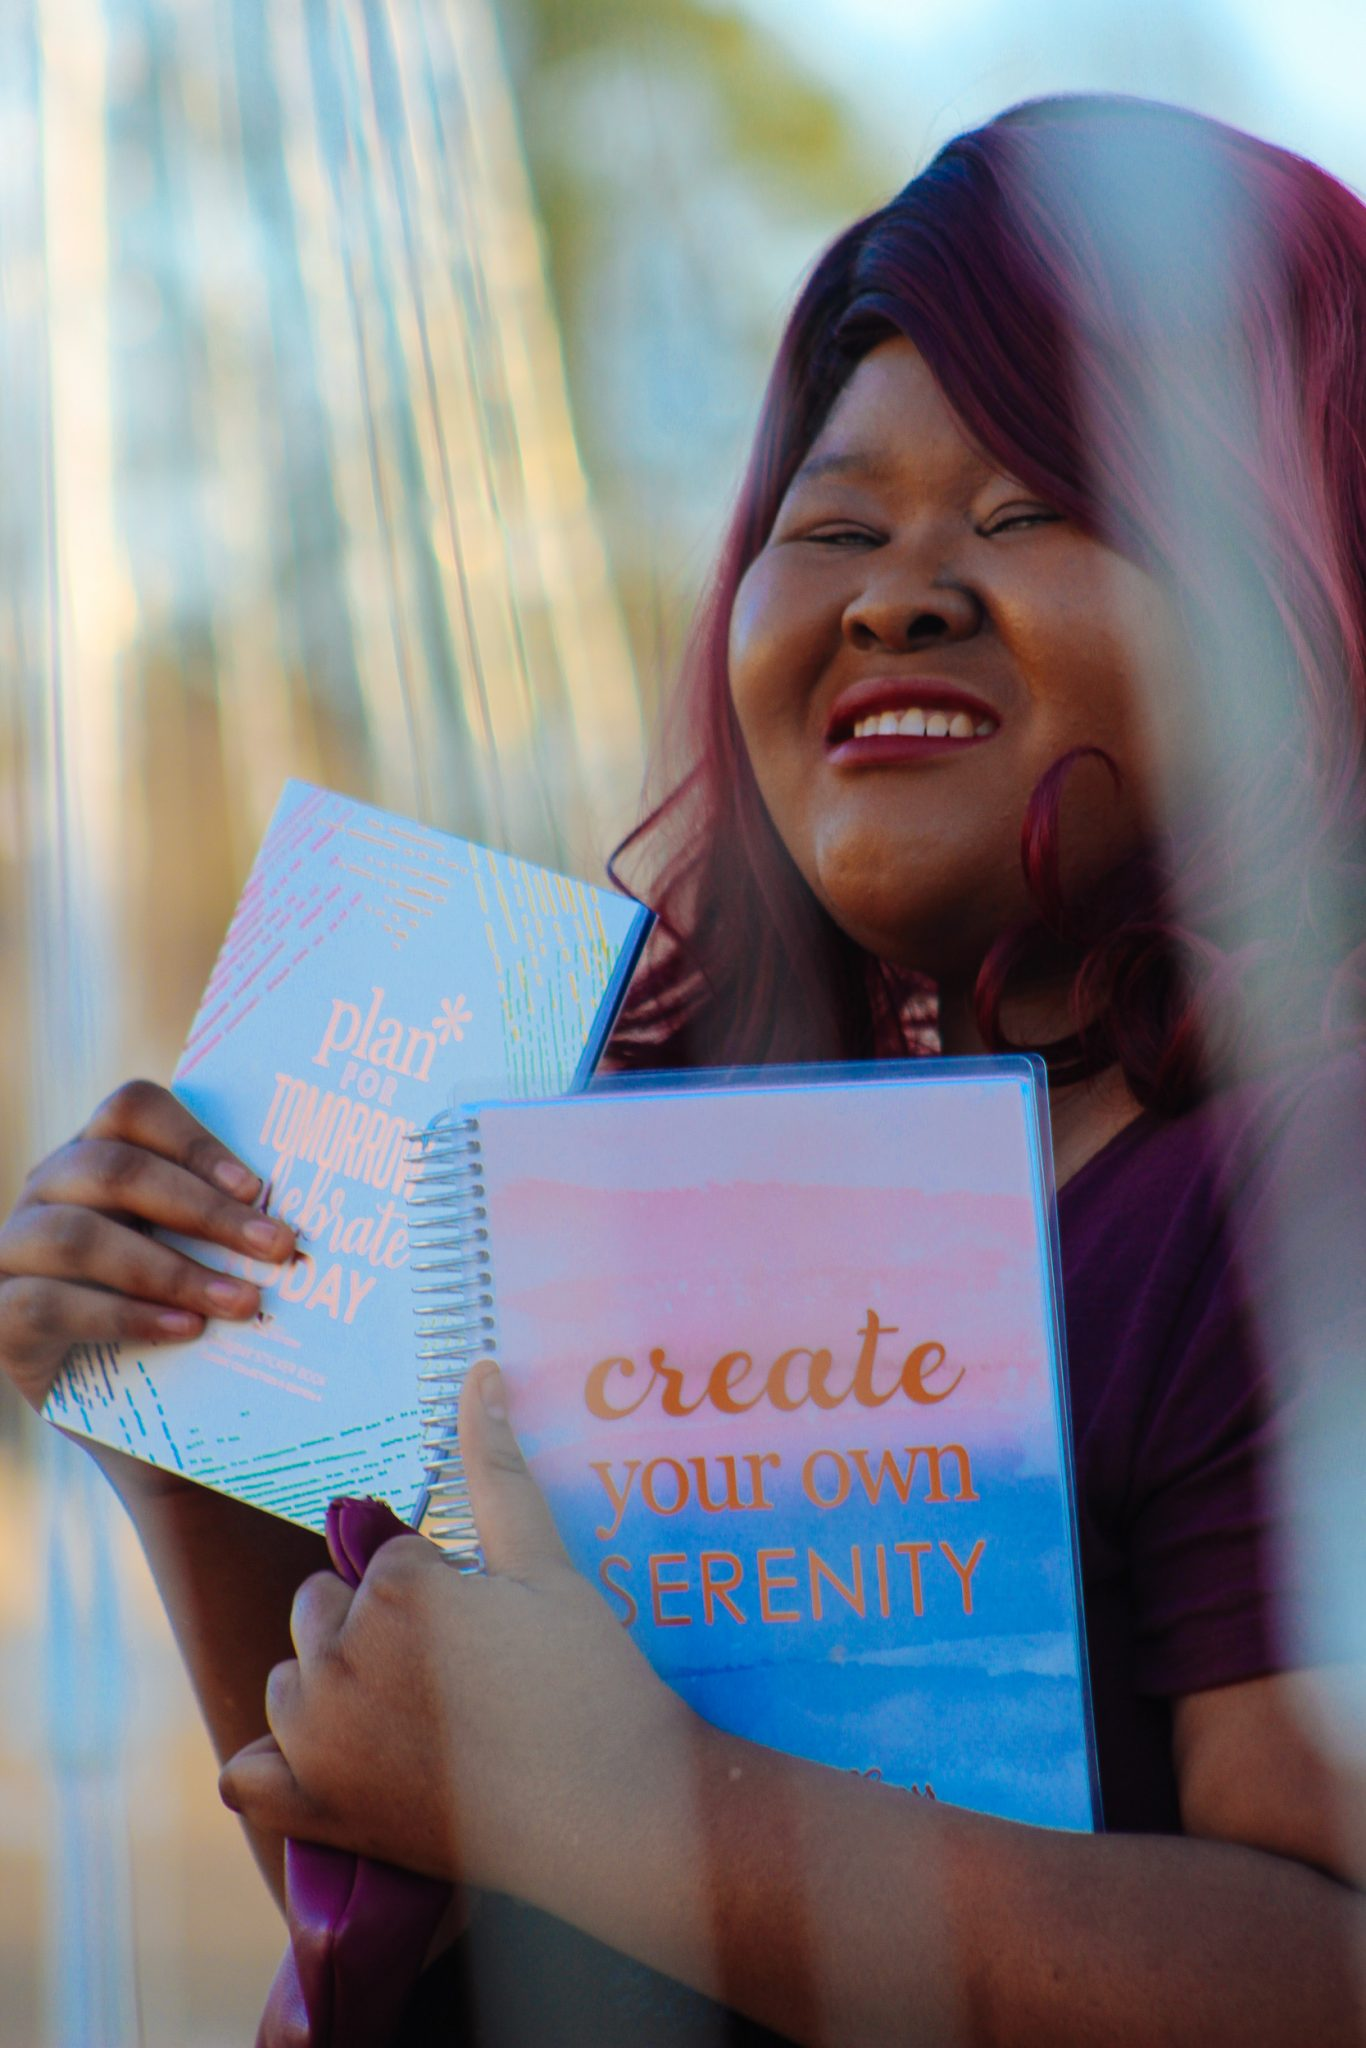 How To Plan Your Life In 2019 With Erin Condren + A Giveaway!